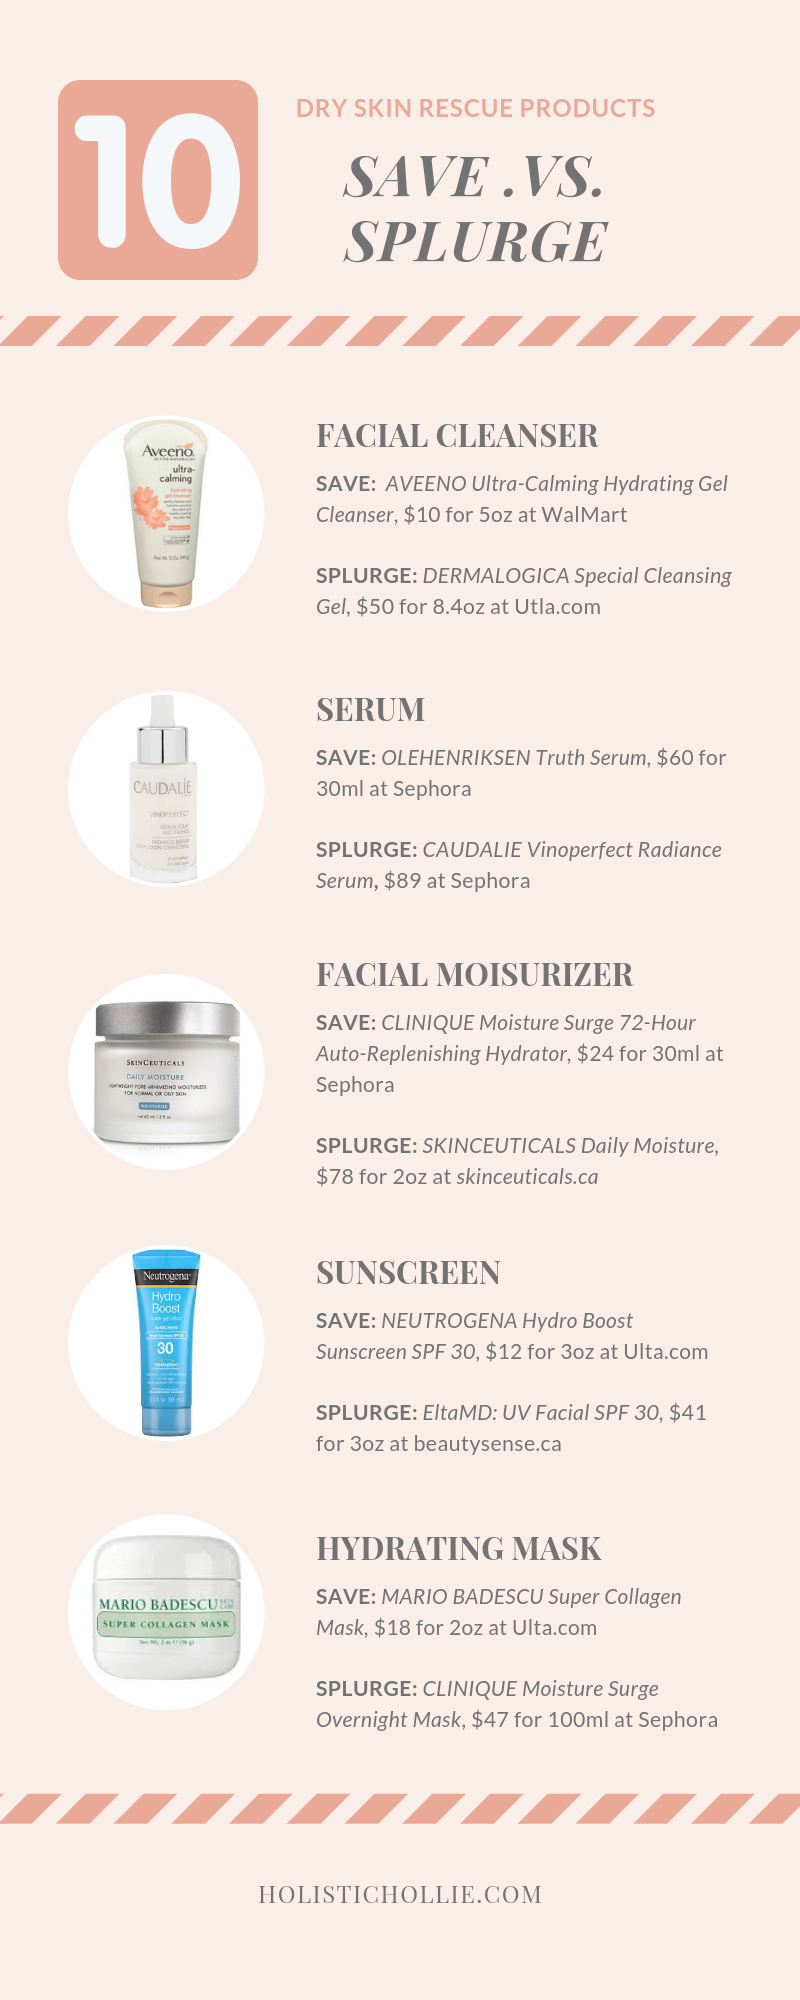 10 dry skin rescue products save vs. splurge.png